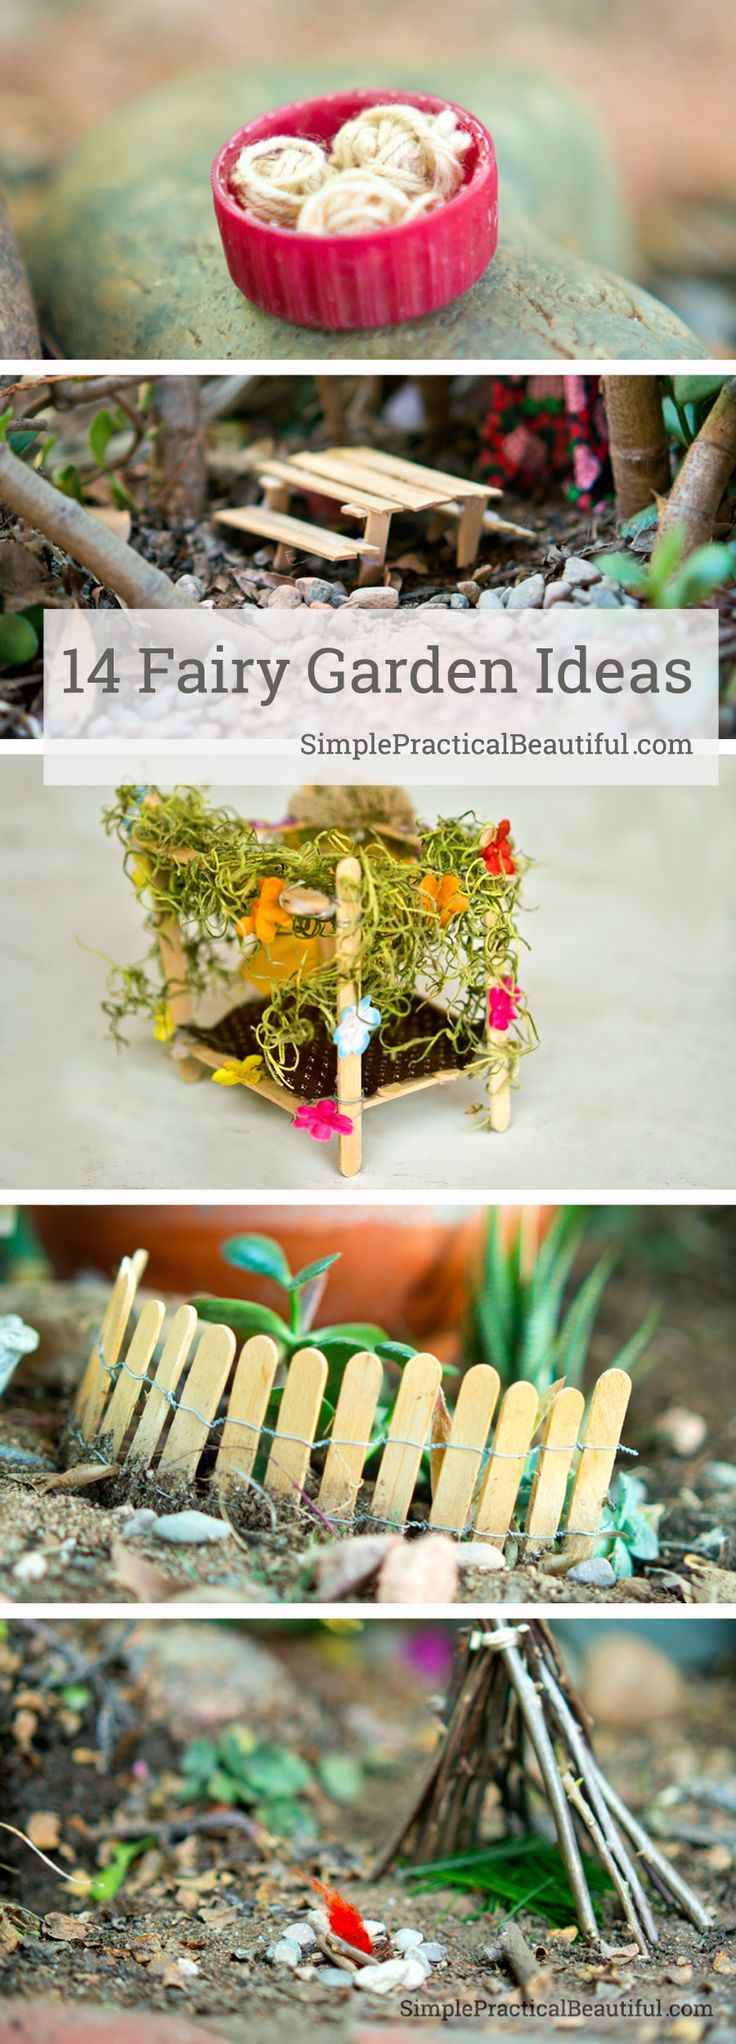 Fairy Gardens Ideas fairy garden3 Lots Of Easy Diy Fairy Garden Ideas For Making Cute Miniature Accessories And Fairy Houses